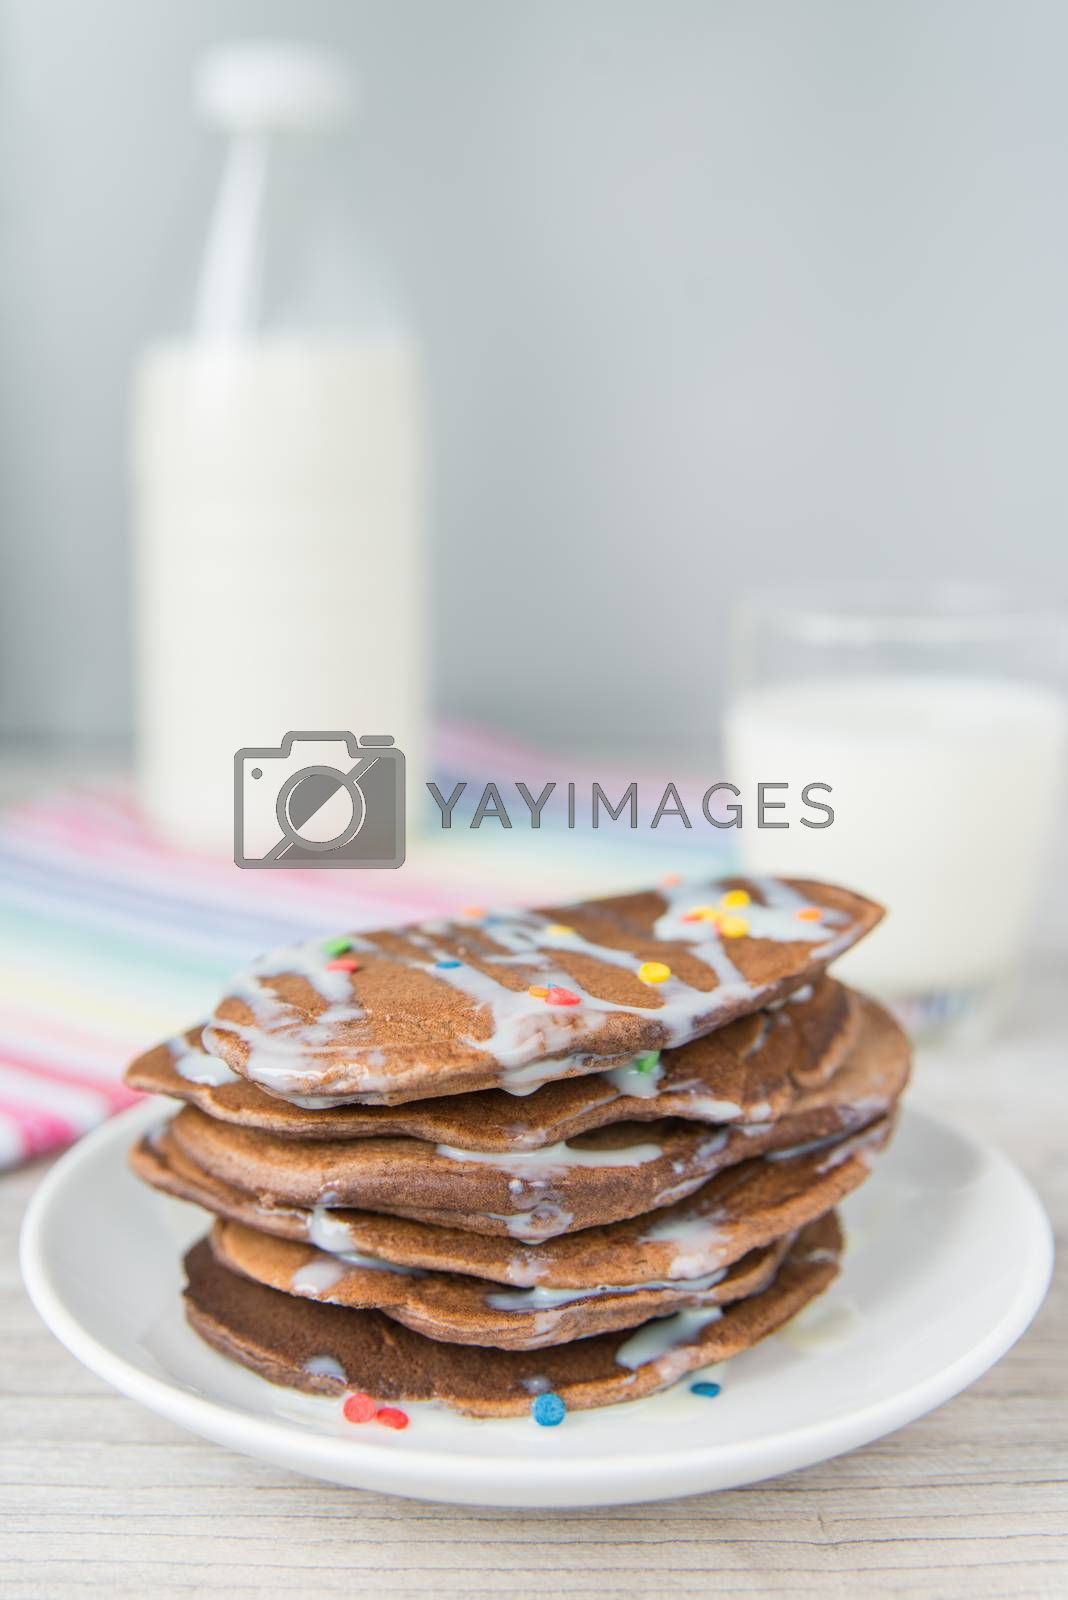 Royalty free image of Decorated chocolate pancakes with milk by Linaga